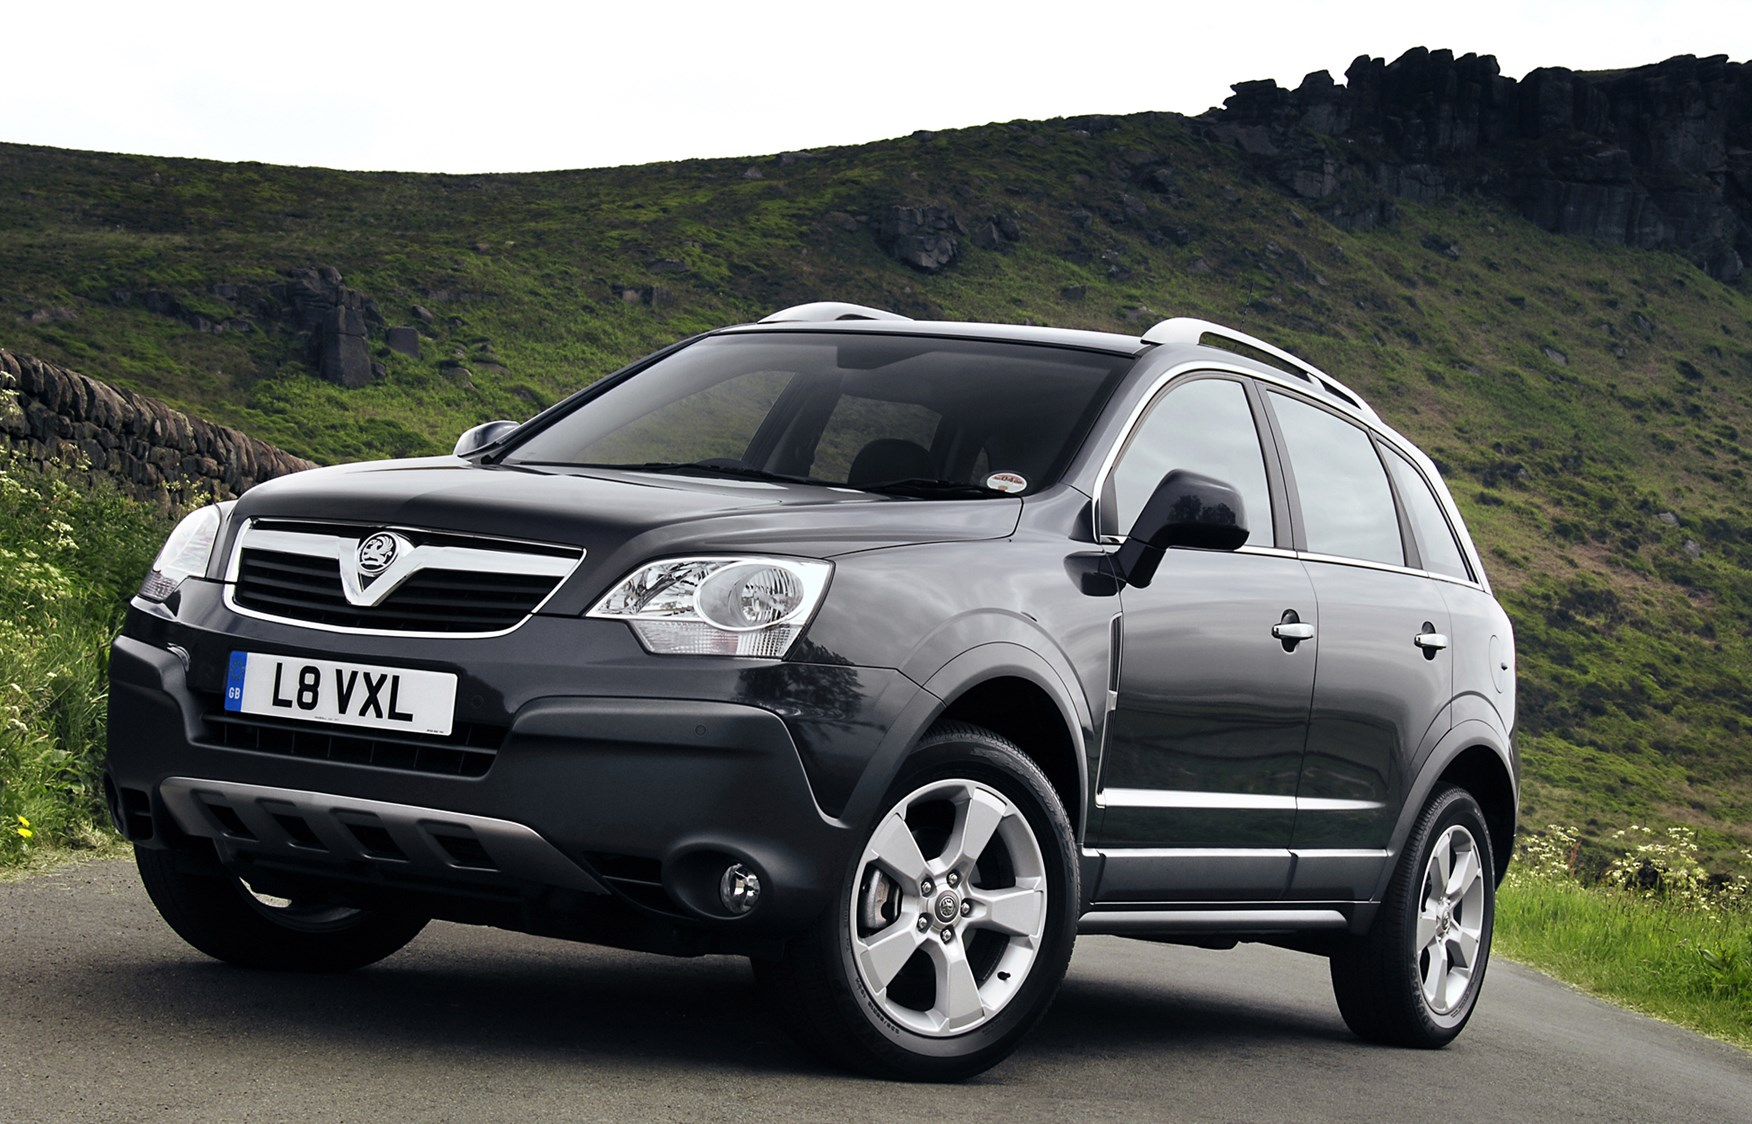 Cars Com Reviews >> Vauxhall Antara Station Wagon Review (2007 - 2015) | Parkers